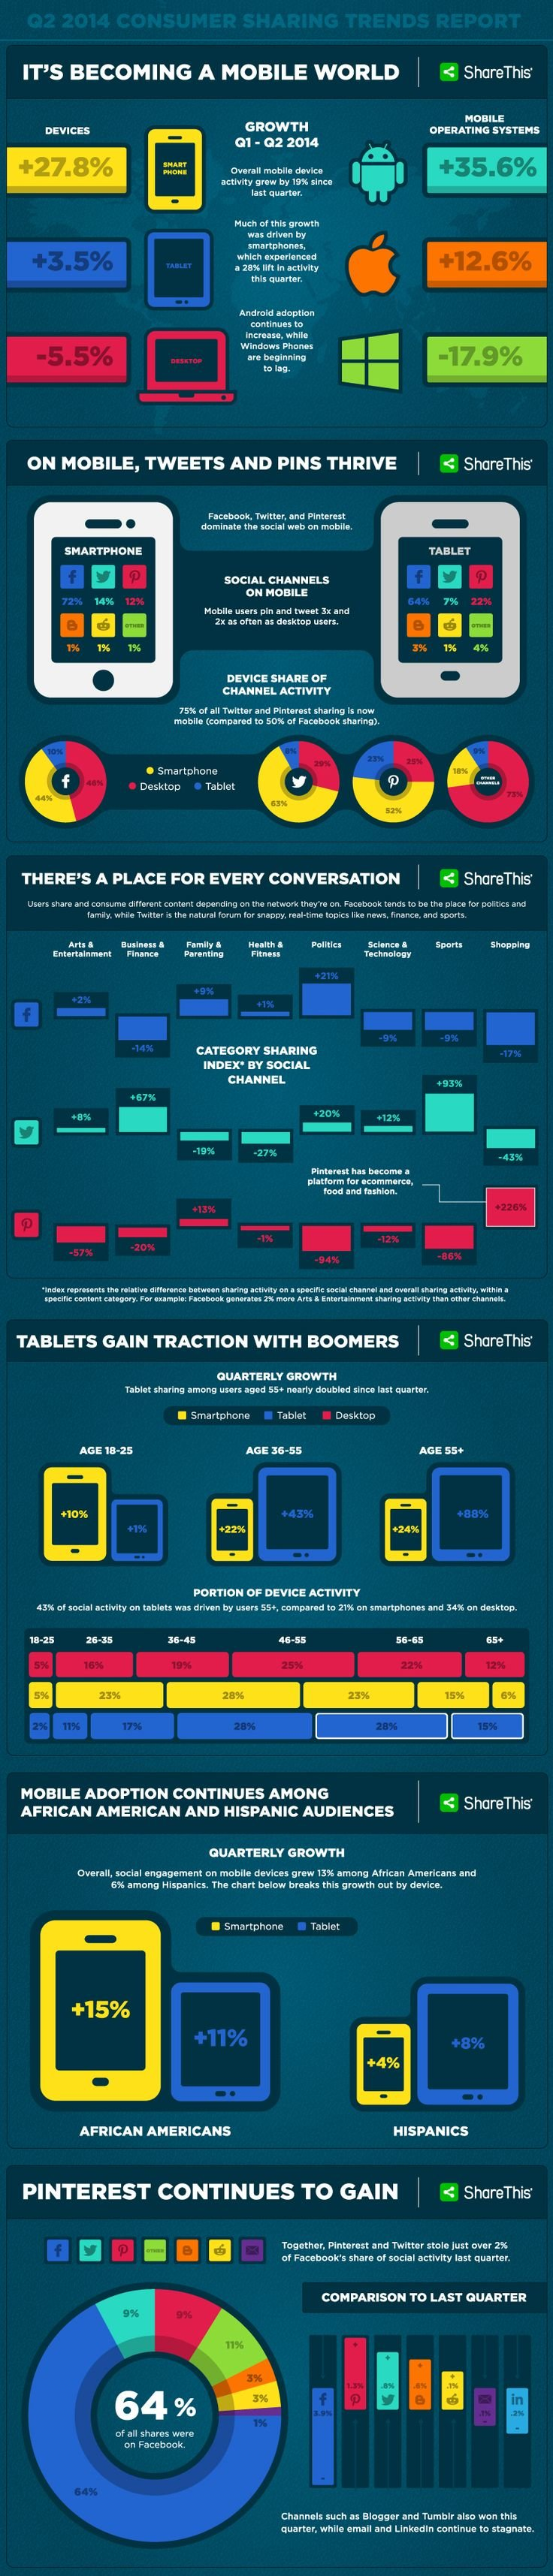 It's becoming a mobile world #infographic